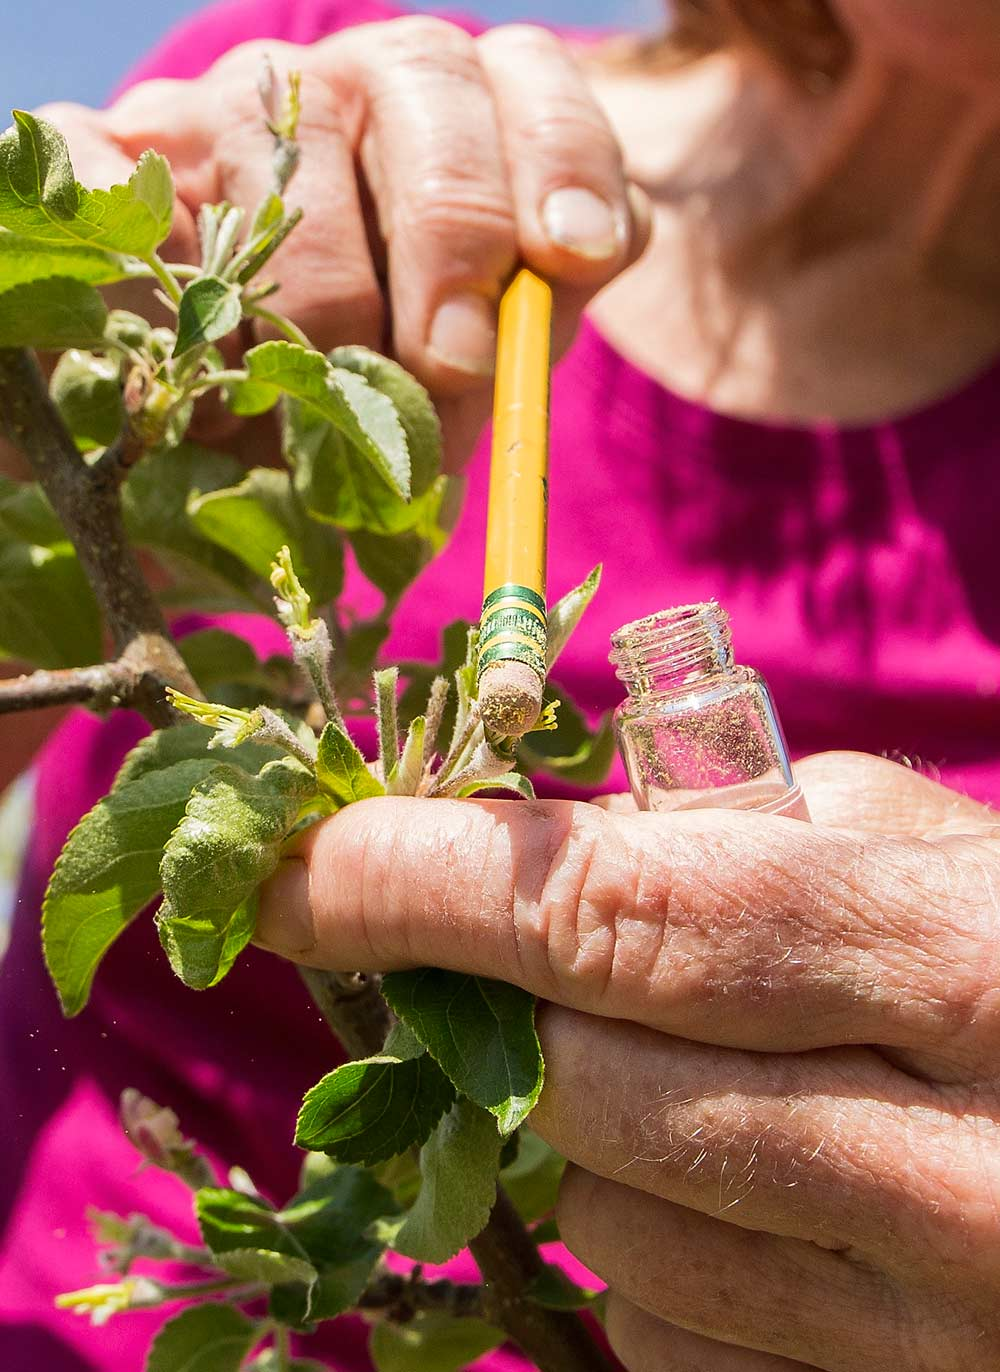 The hunt for new varieties continues, as research technician Bonnie Schonberg uses a pencil eraser to apply pollen to the stamens of an unnamed variety at the university's Sunrise research orchard near Wenatchee. Schonberg previously stripped and emasculated the blooms to isolate the cross pollination. (Photo by Ross Courtney,  Good Fruit Grower )